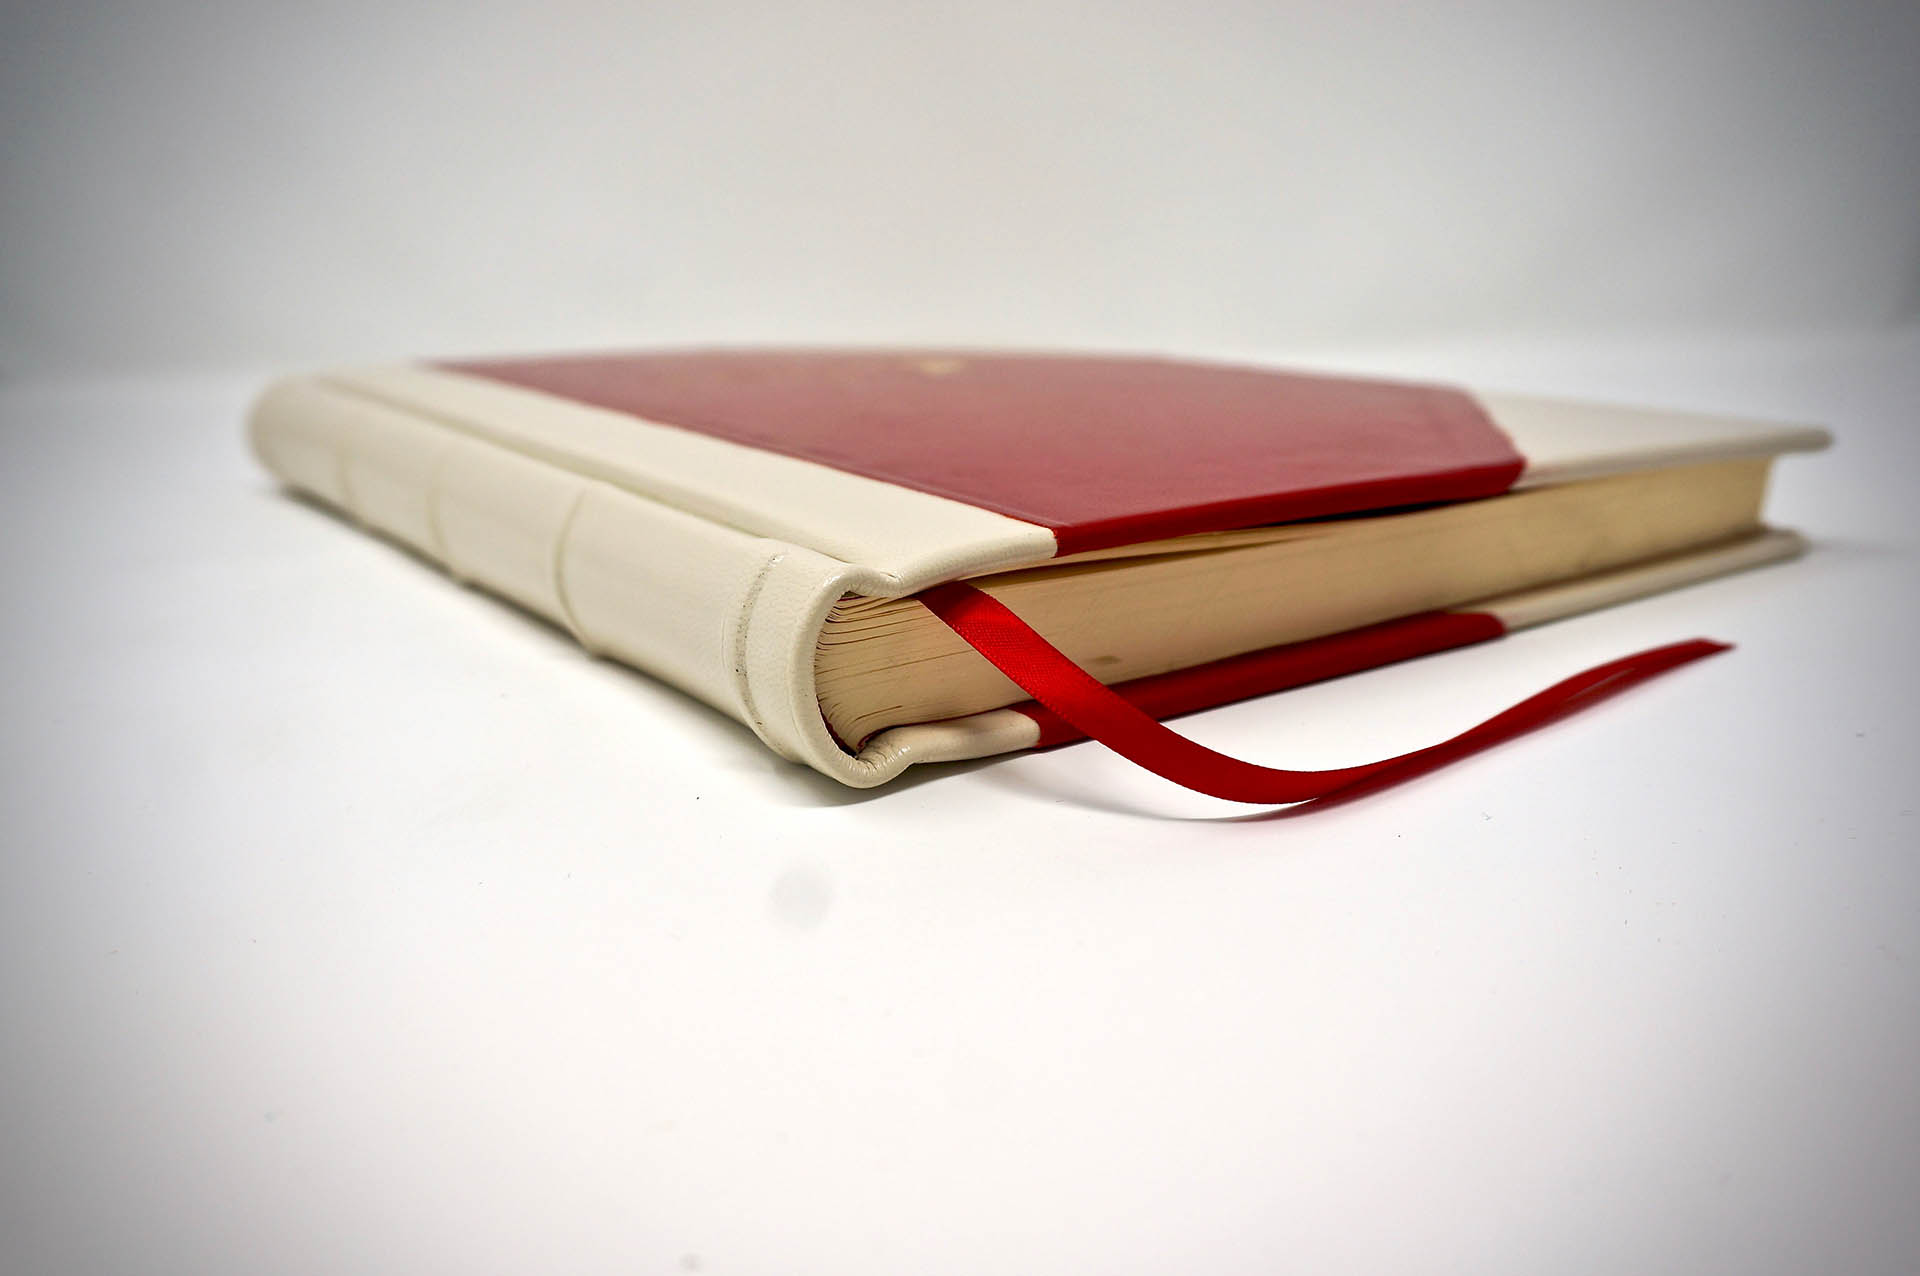 Boston Harbor Bookbindery www.bostonharborbooks.com  Monaco Sailing Journal; Custom red/white leather book, designed and executed for the client's yacht adventures.